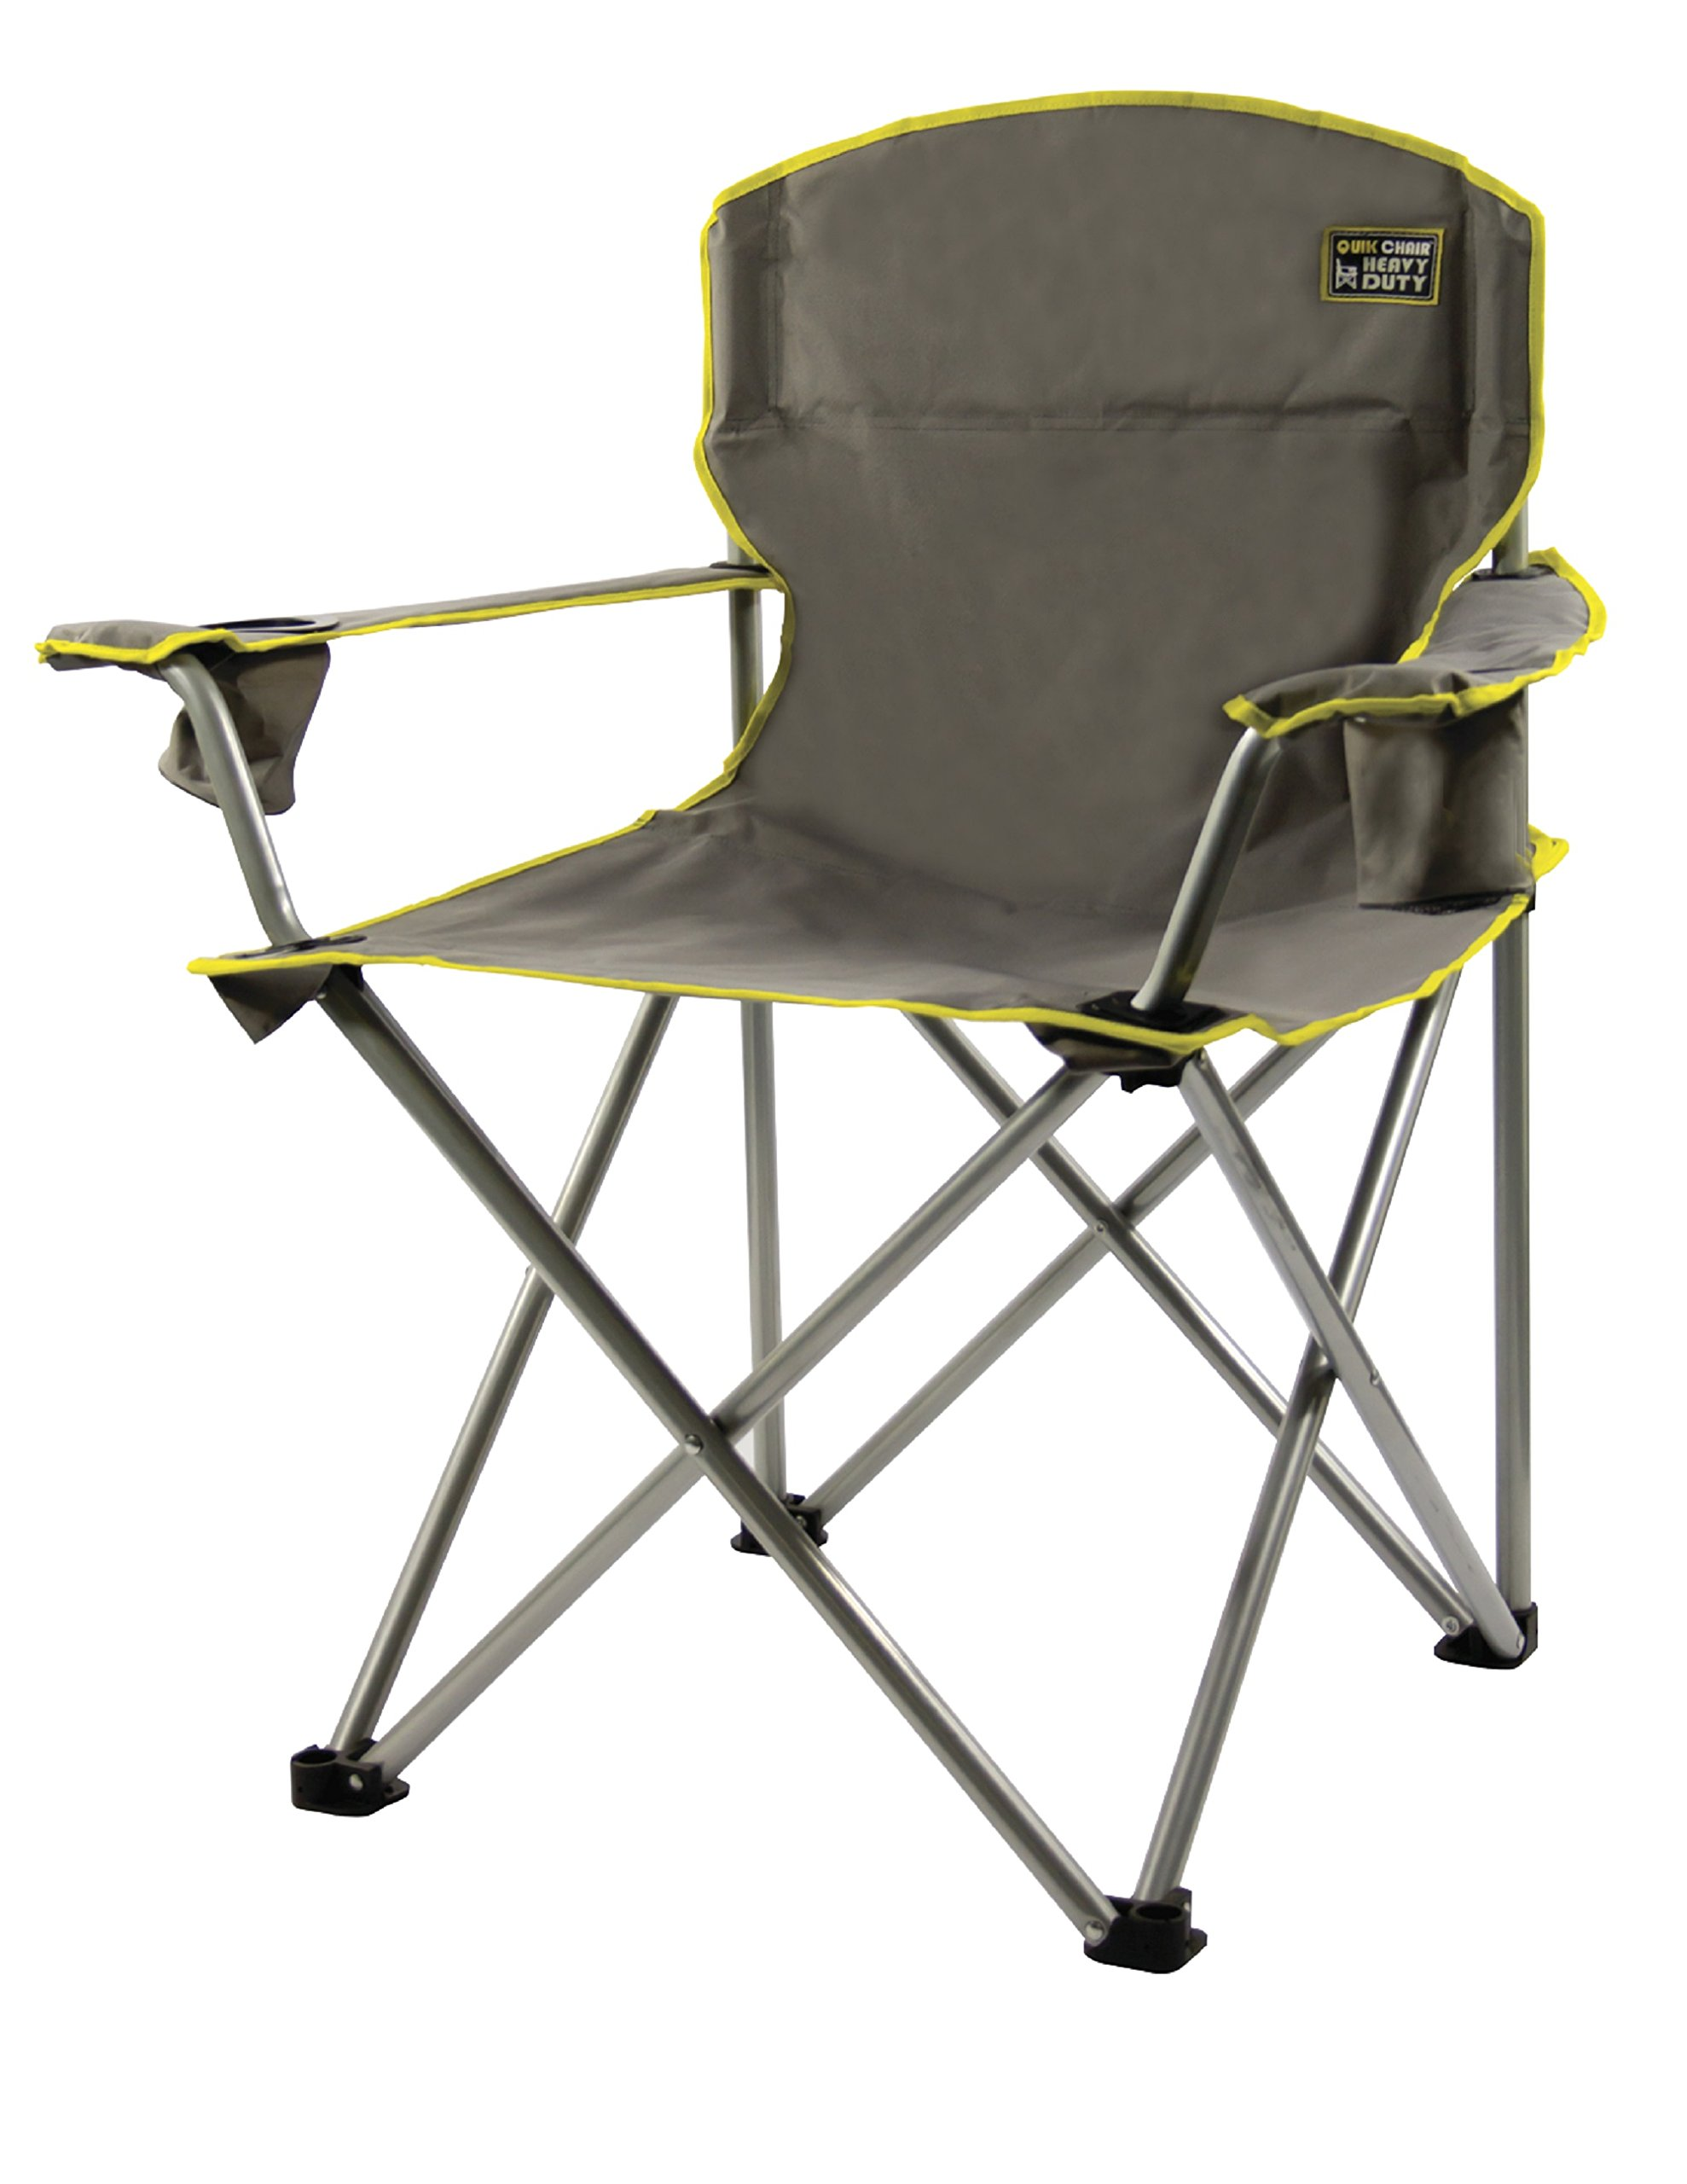 Quik Chair Heavy Duty Folding Camp Chair Grey Portable Seat